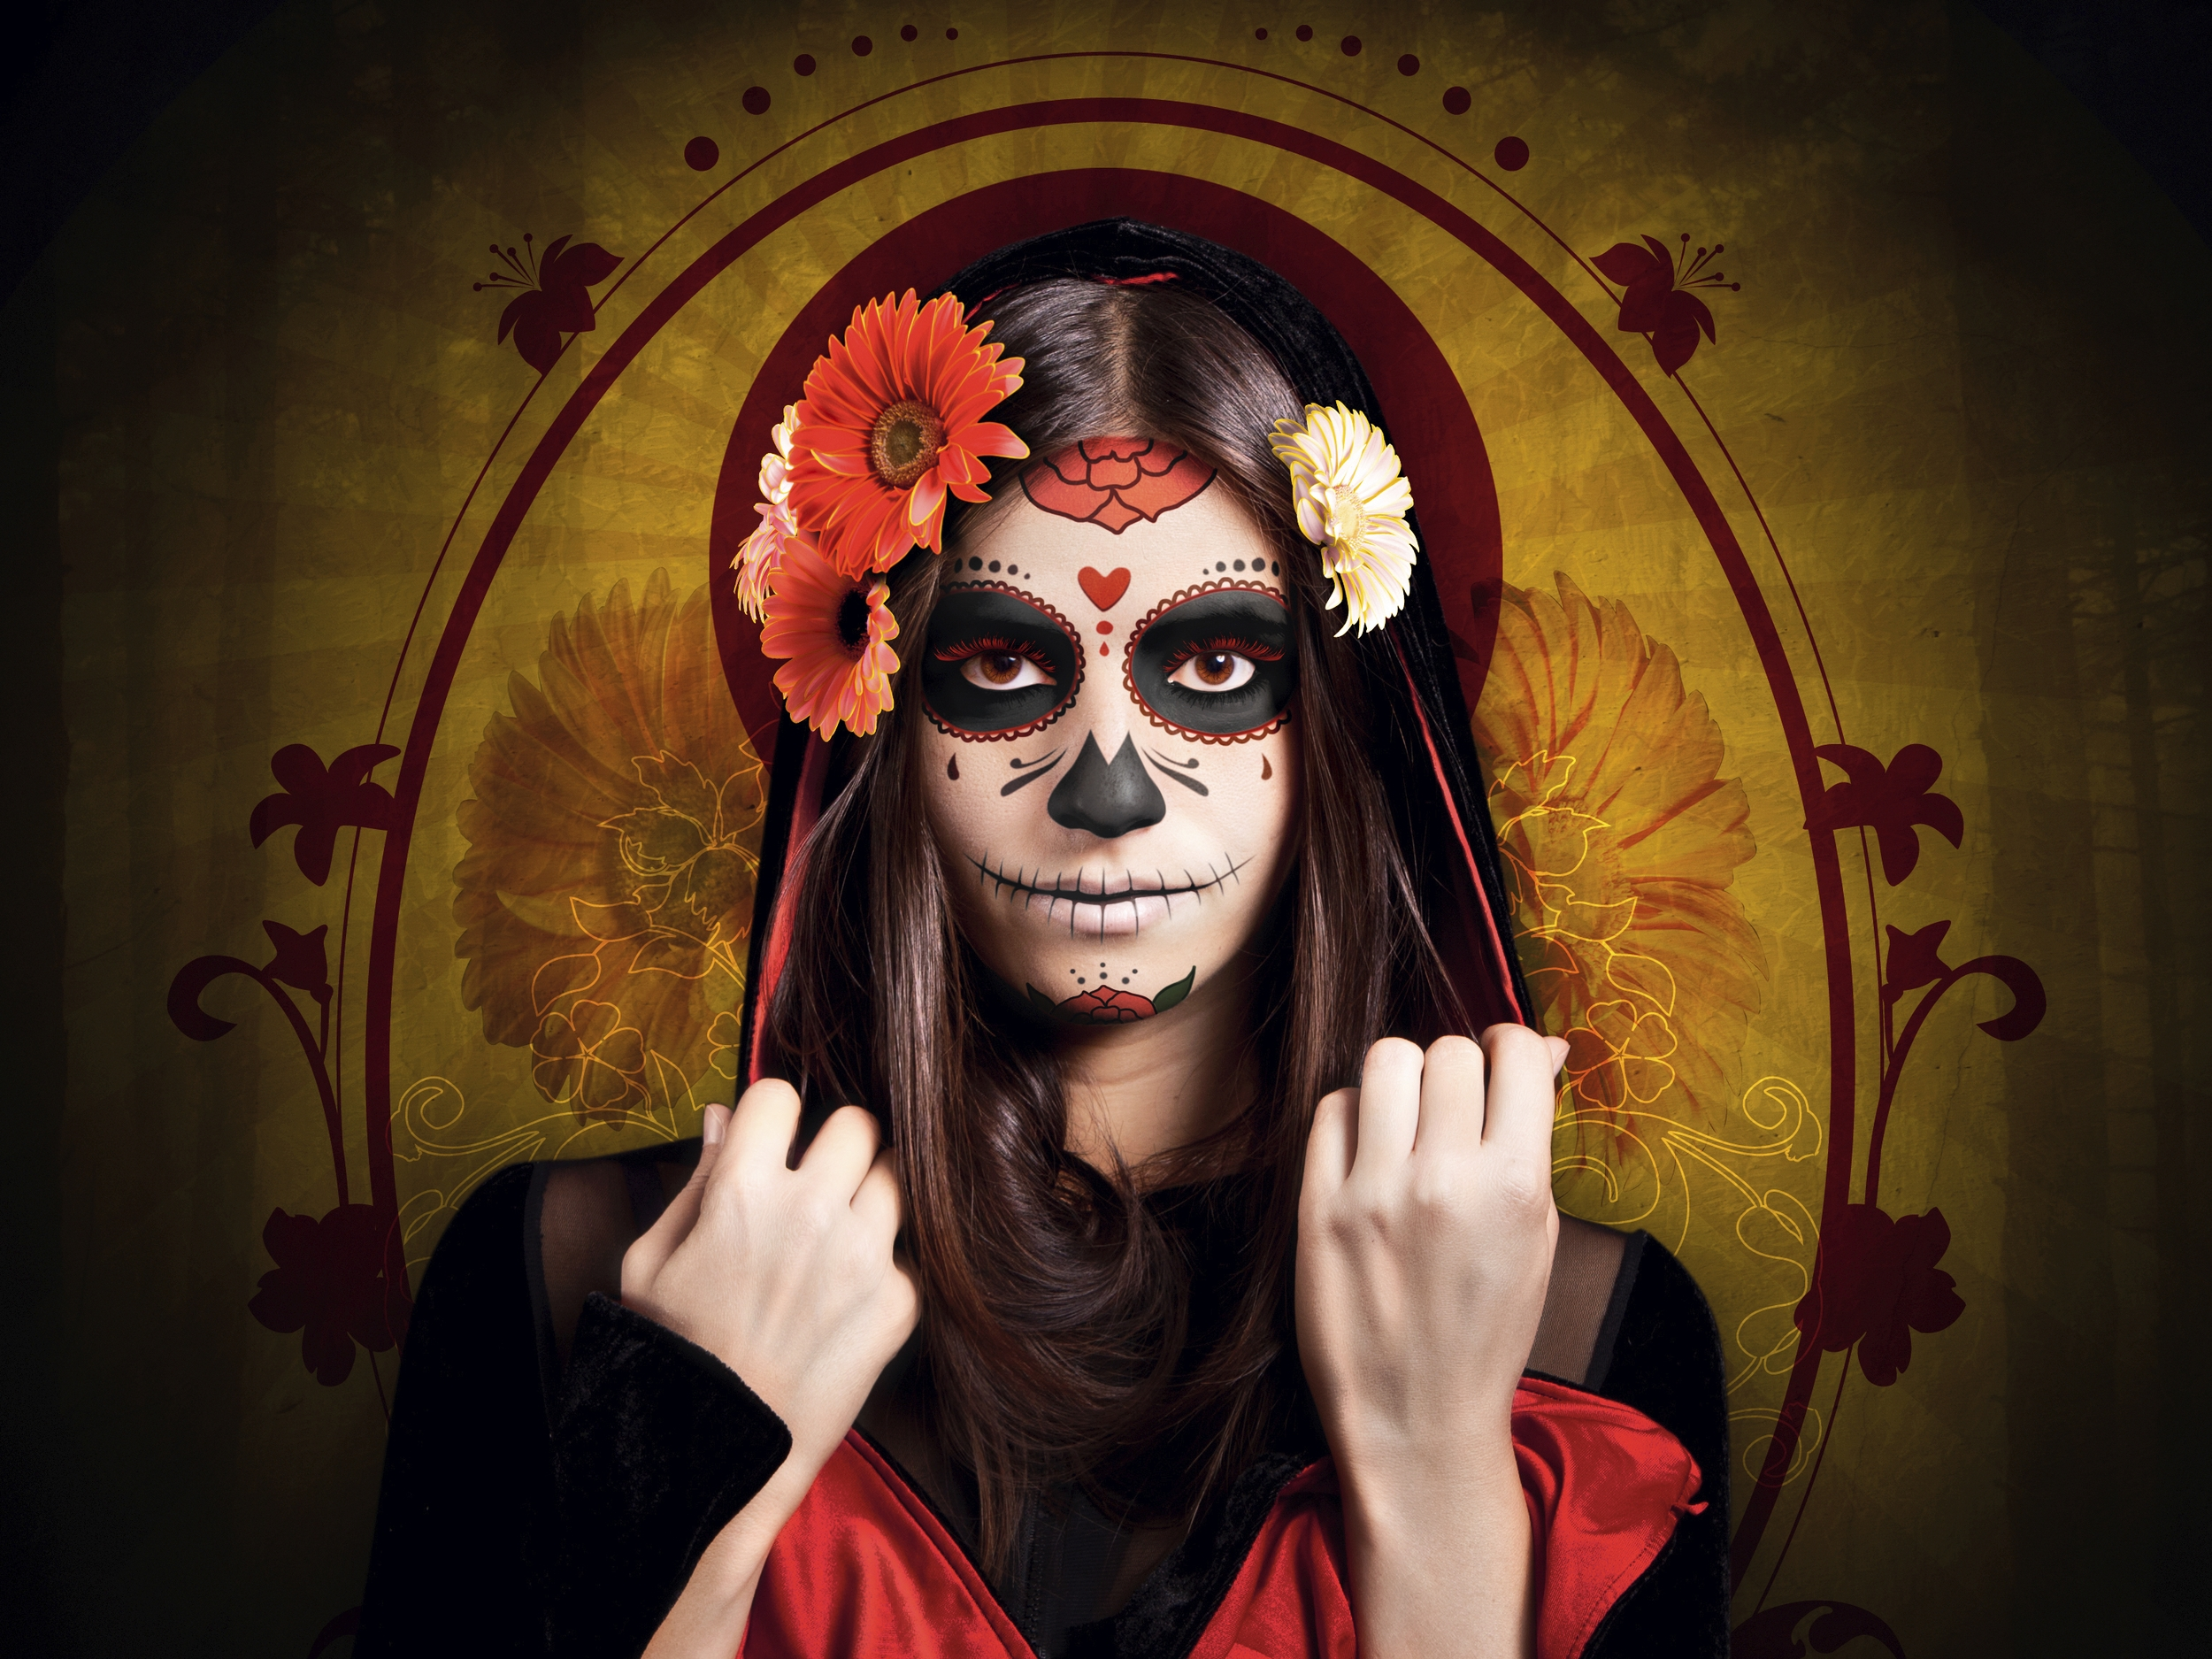 DAY OF THE DEAD   Music by Matt Hahn, Battery by Chris Cruz-Vargas